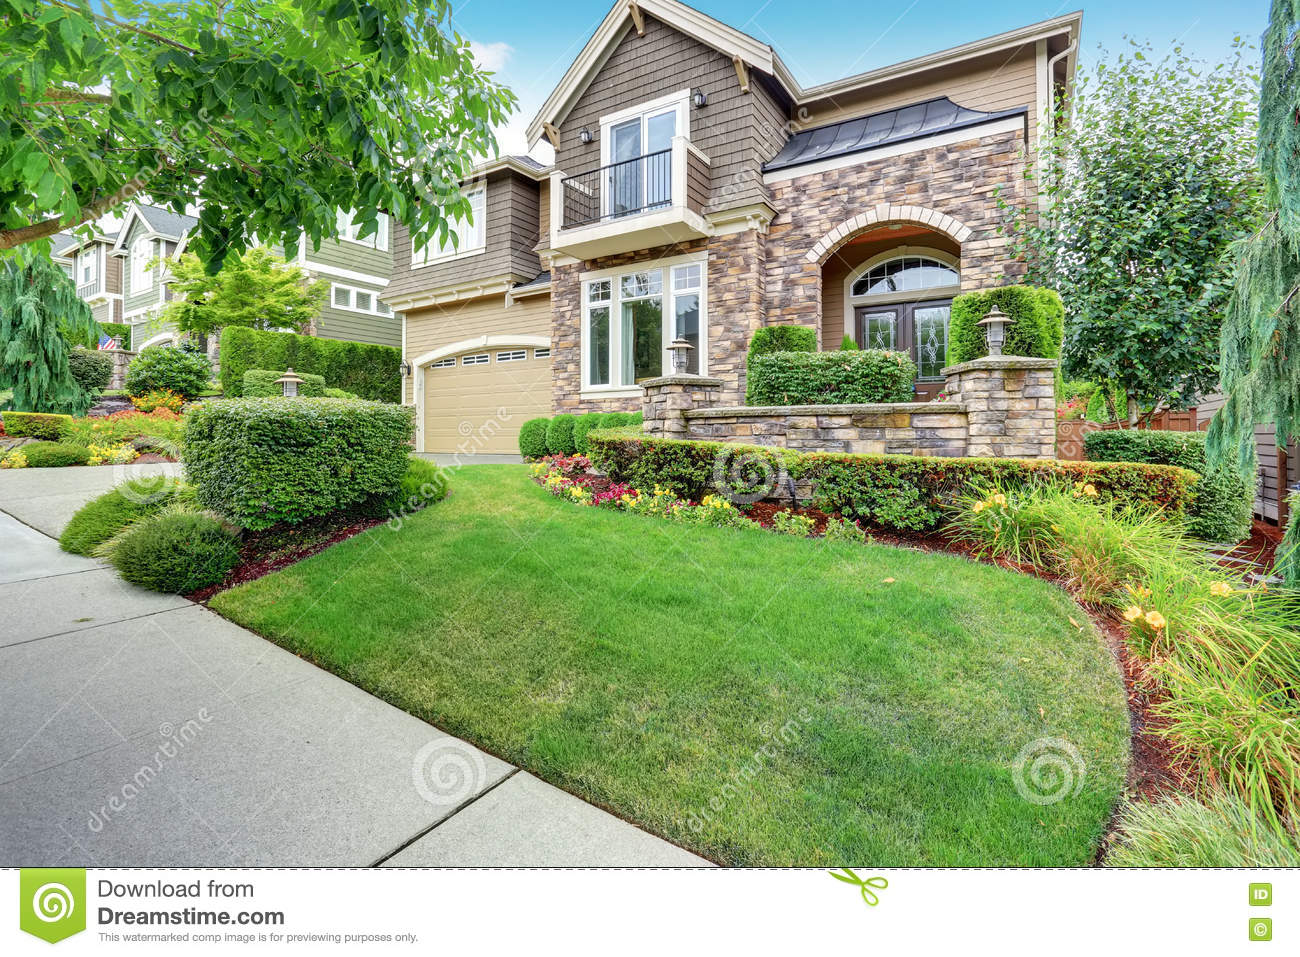 Red entrance door in front of residential house stock photo - Beautiful Curb Appeal Of Sweet Beige House With Green